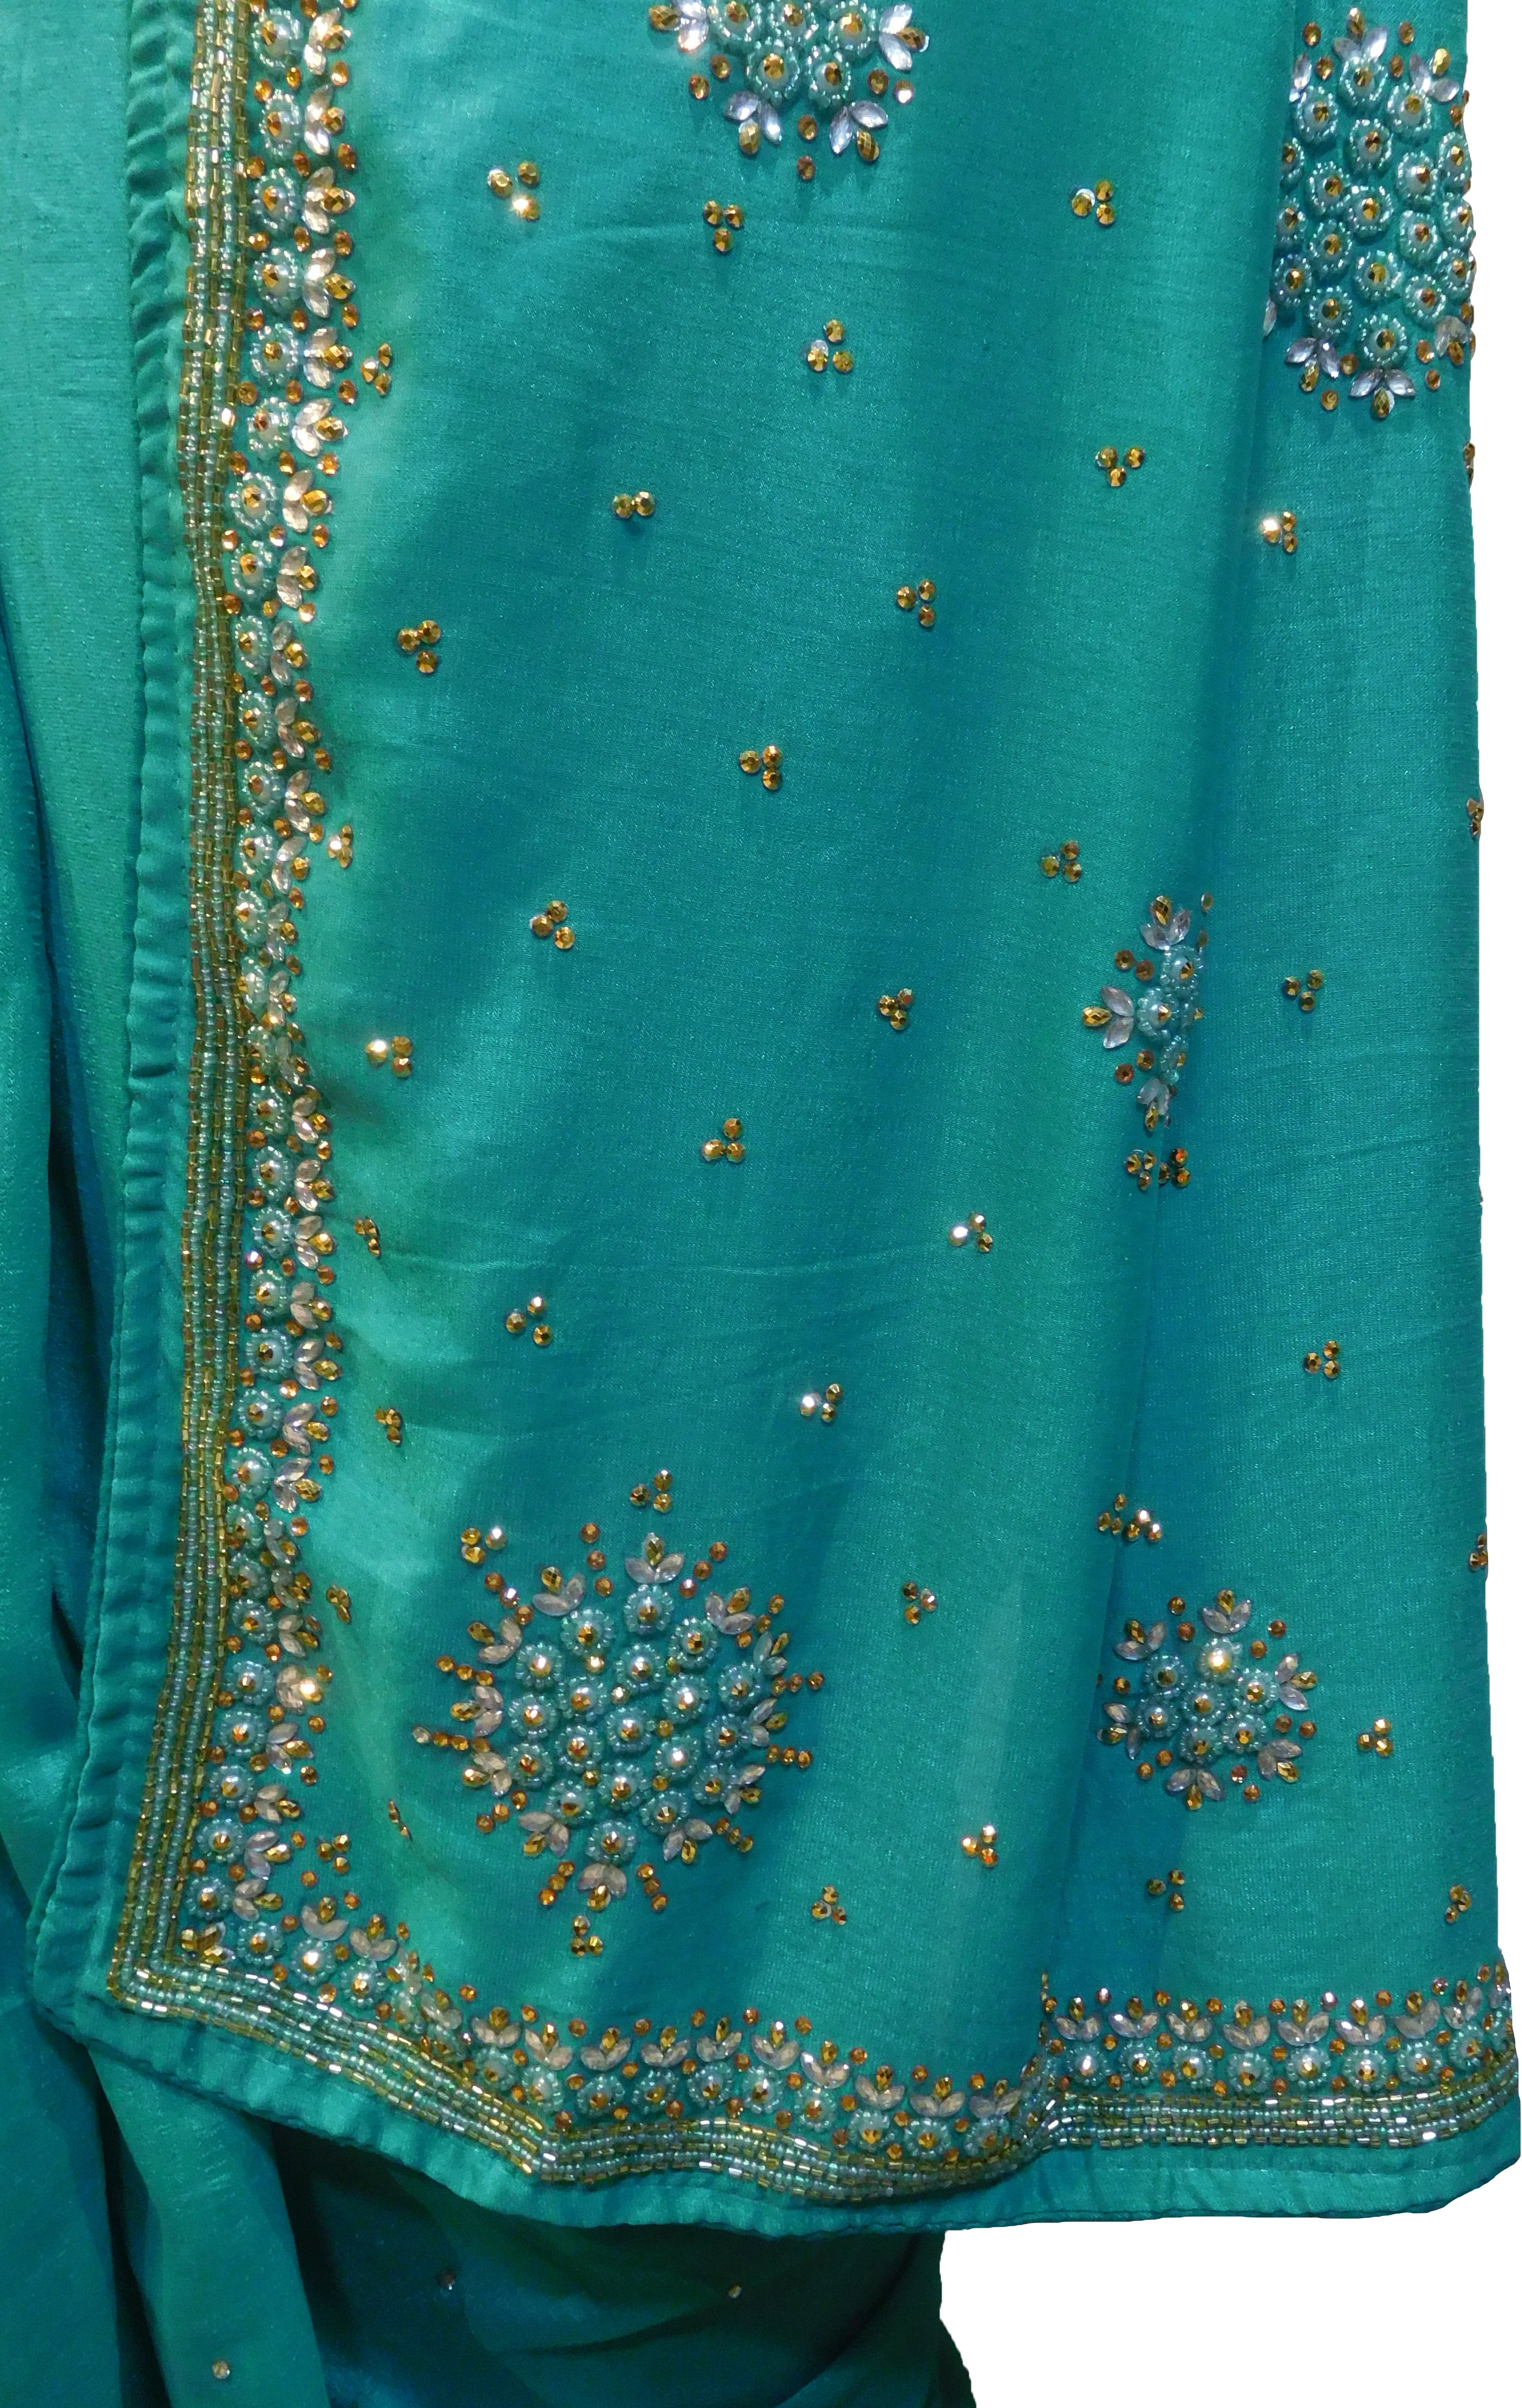 SMSAREE Turquoise Designer Wedding Partywear Silk (Vichitra) Stone Beads & Cutdana Hand Embroidery Work Bridal Saree Sari With Blouse Piece F258